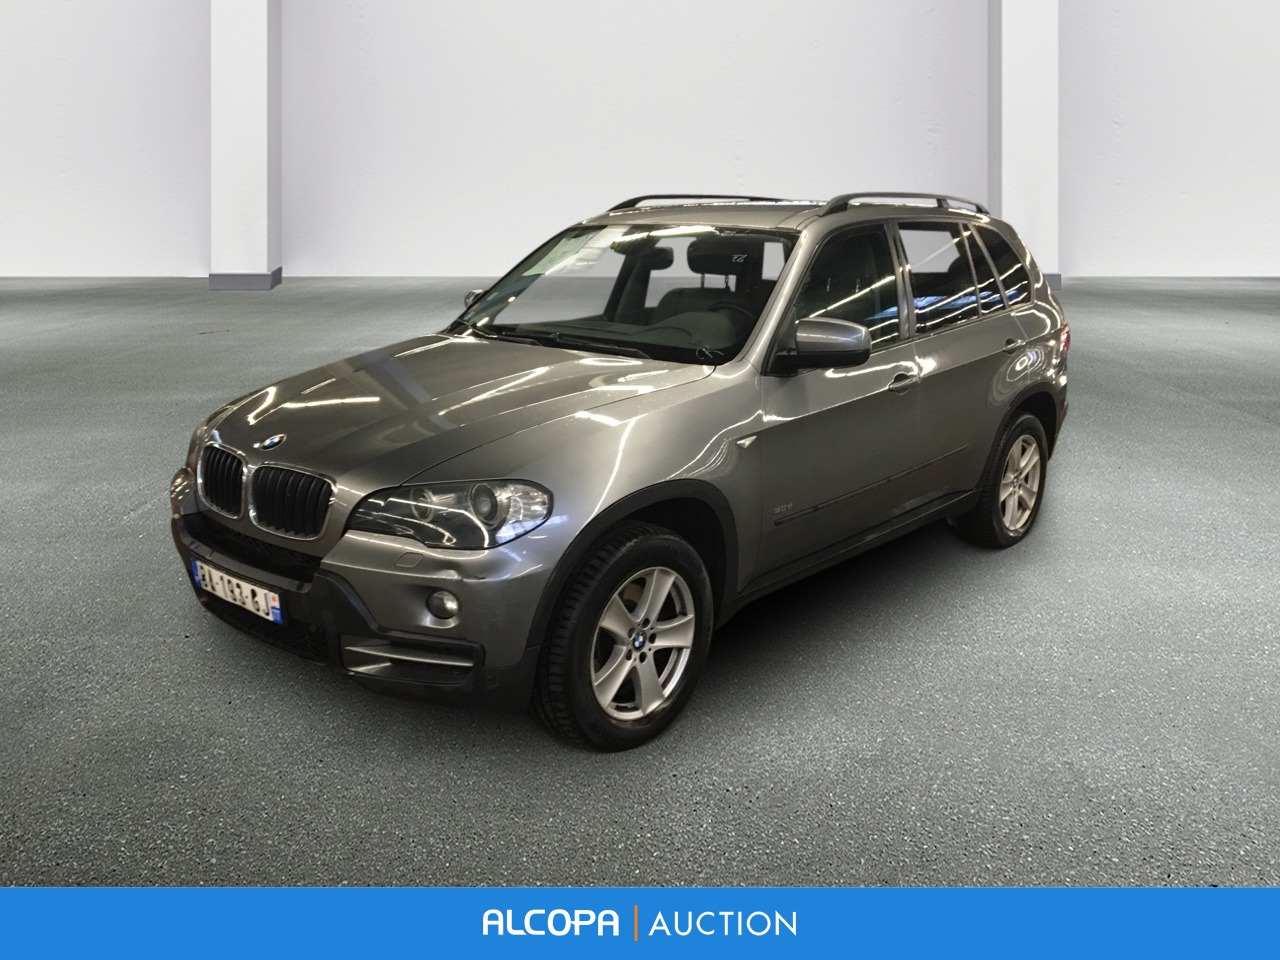 Bmw X5 E70 X5 3 0d 235ch Luxe A Alcopa Auction